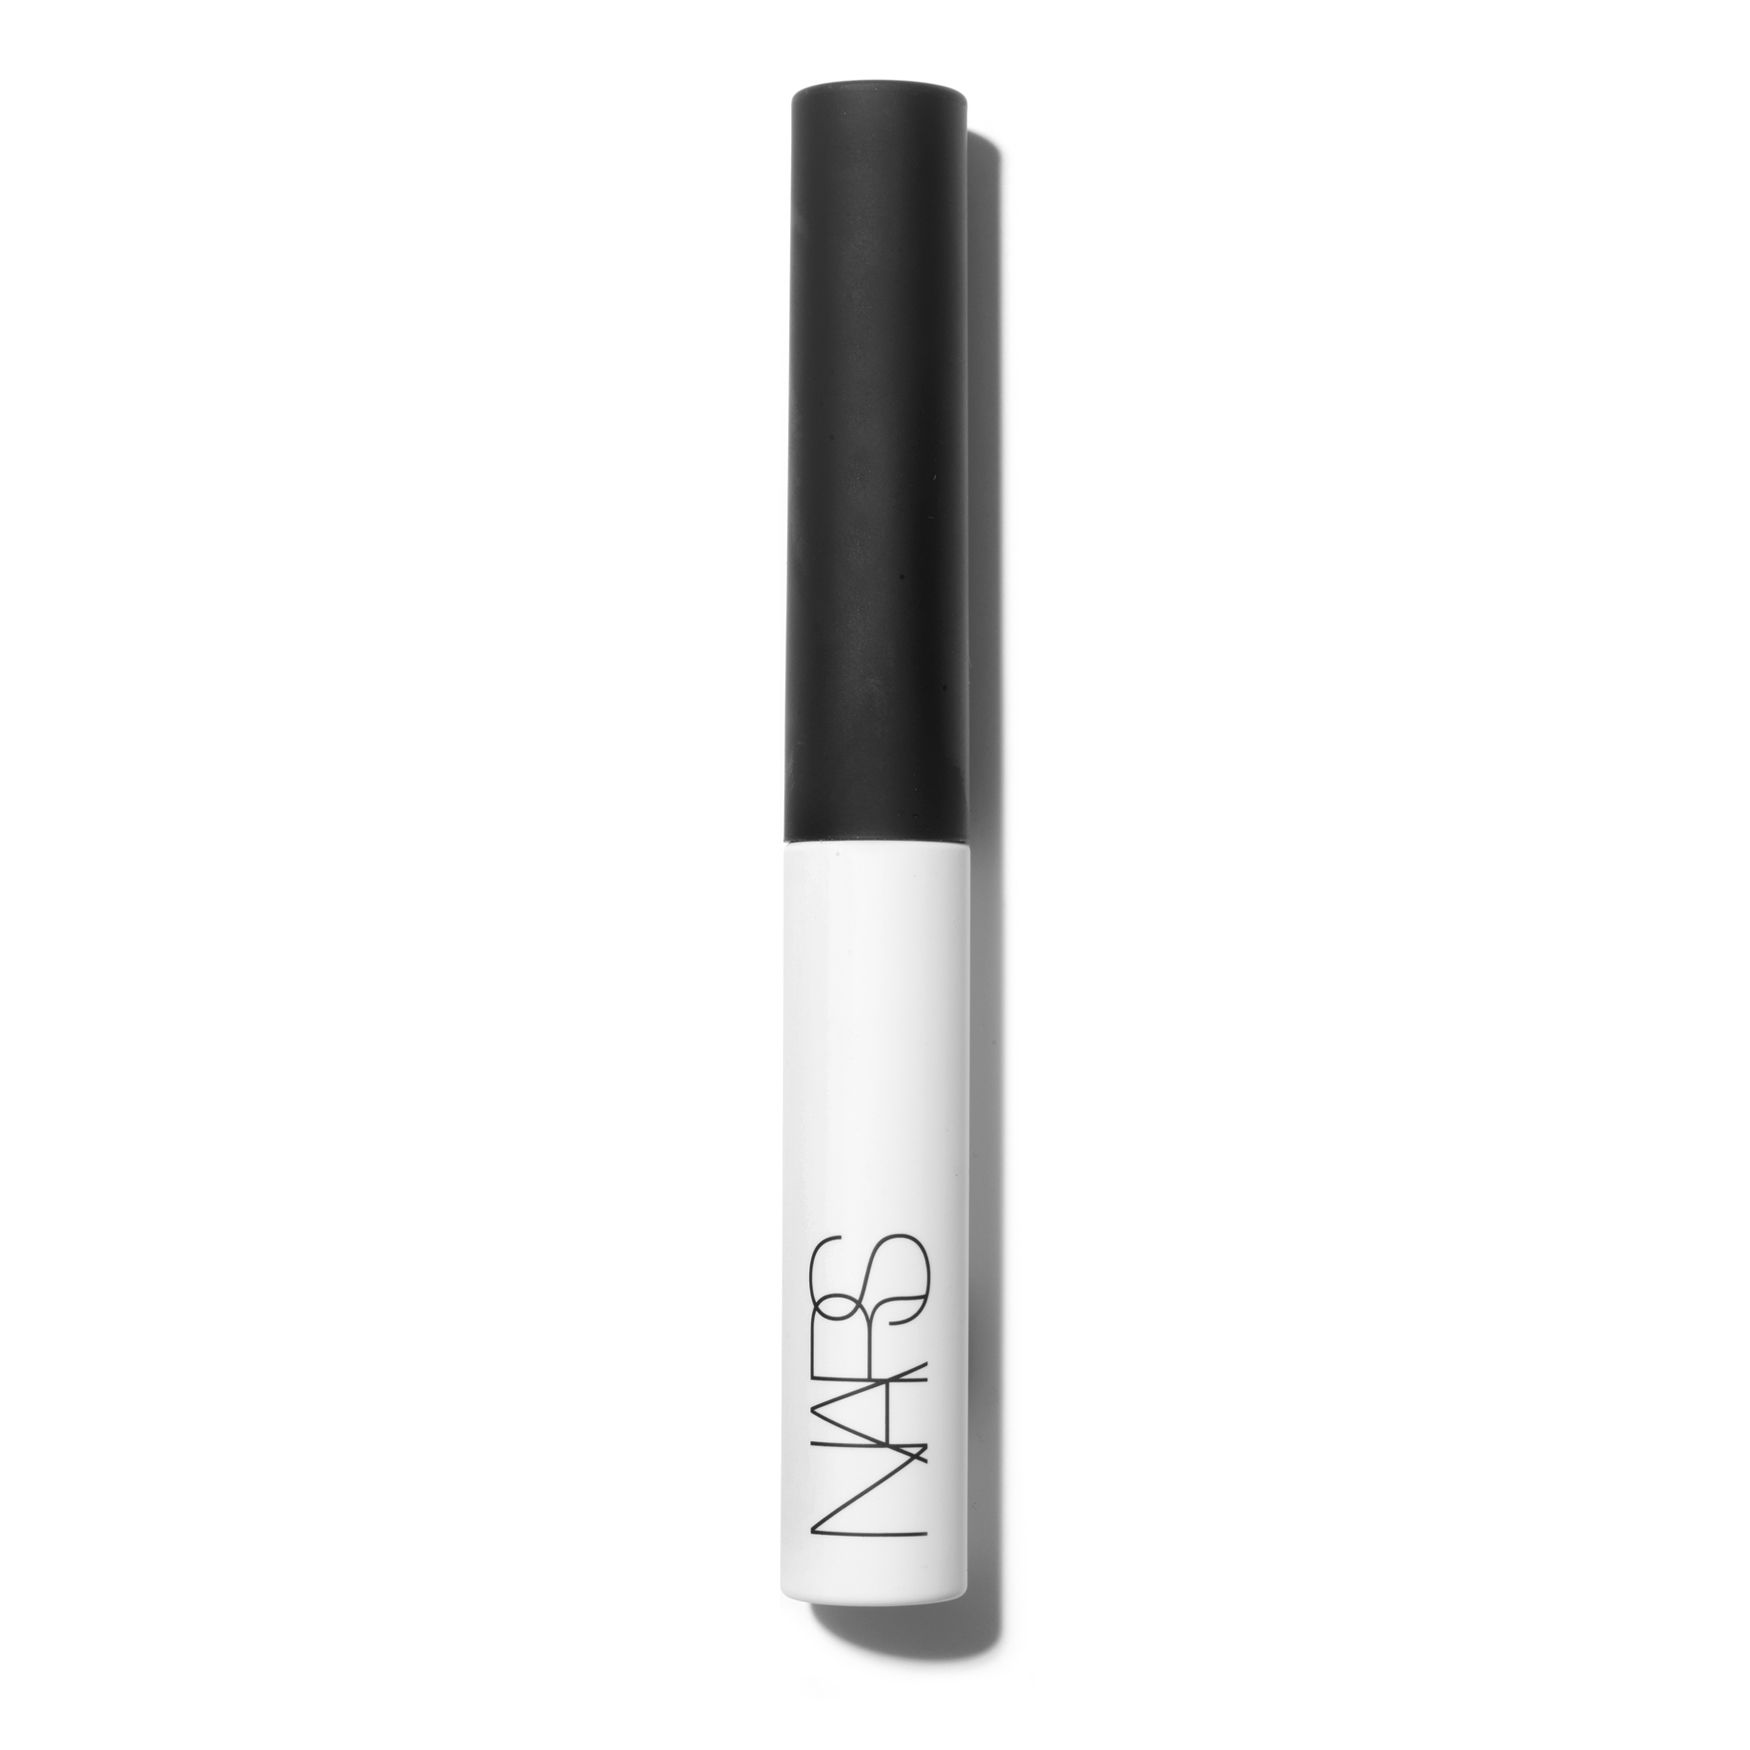 Smudge Proof Eyeshadow Base NARS